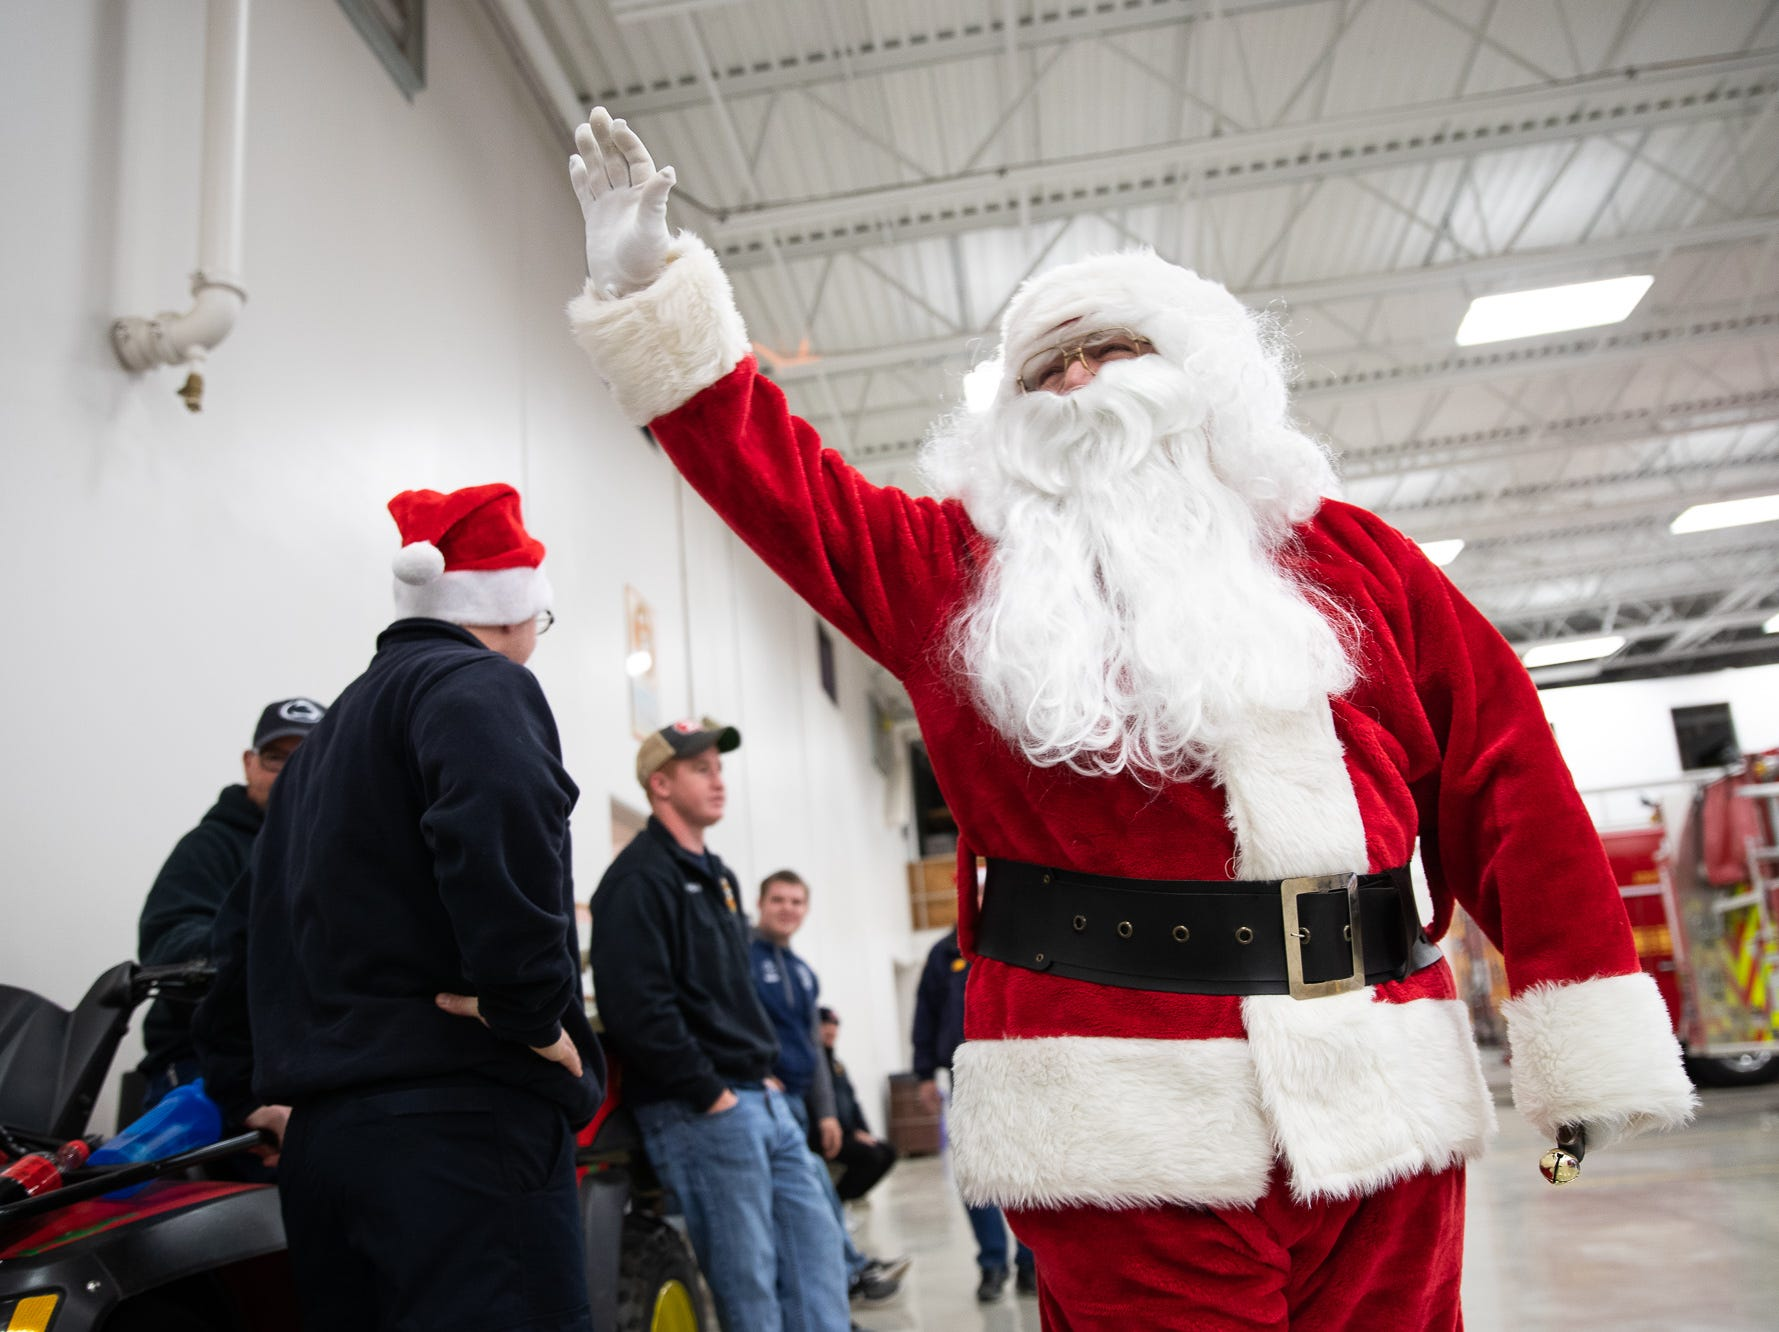 Santa, played by firefighter Wayne Reid, arrives to the Southeastern Adams County Volunteer Emergency Services fire station during the S.A.V.E.S Project Santa, Saturday, Dec. 22, 2018, in McSherrystown Borough. The S.A.V.E.S Project Santa donated food, toys, and clothing to 12 local families in need.